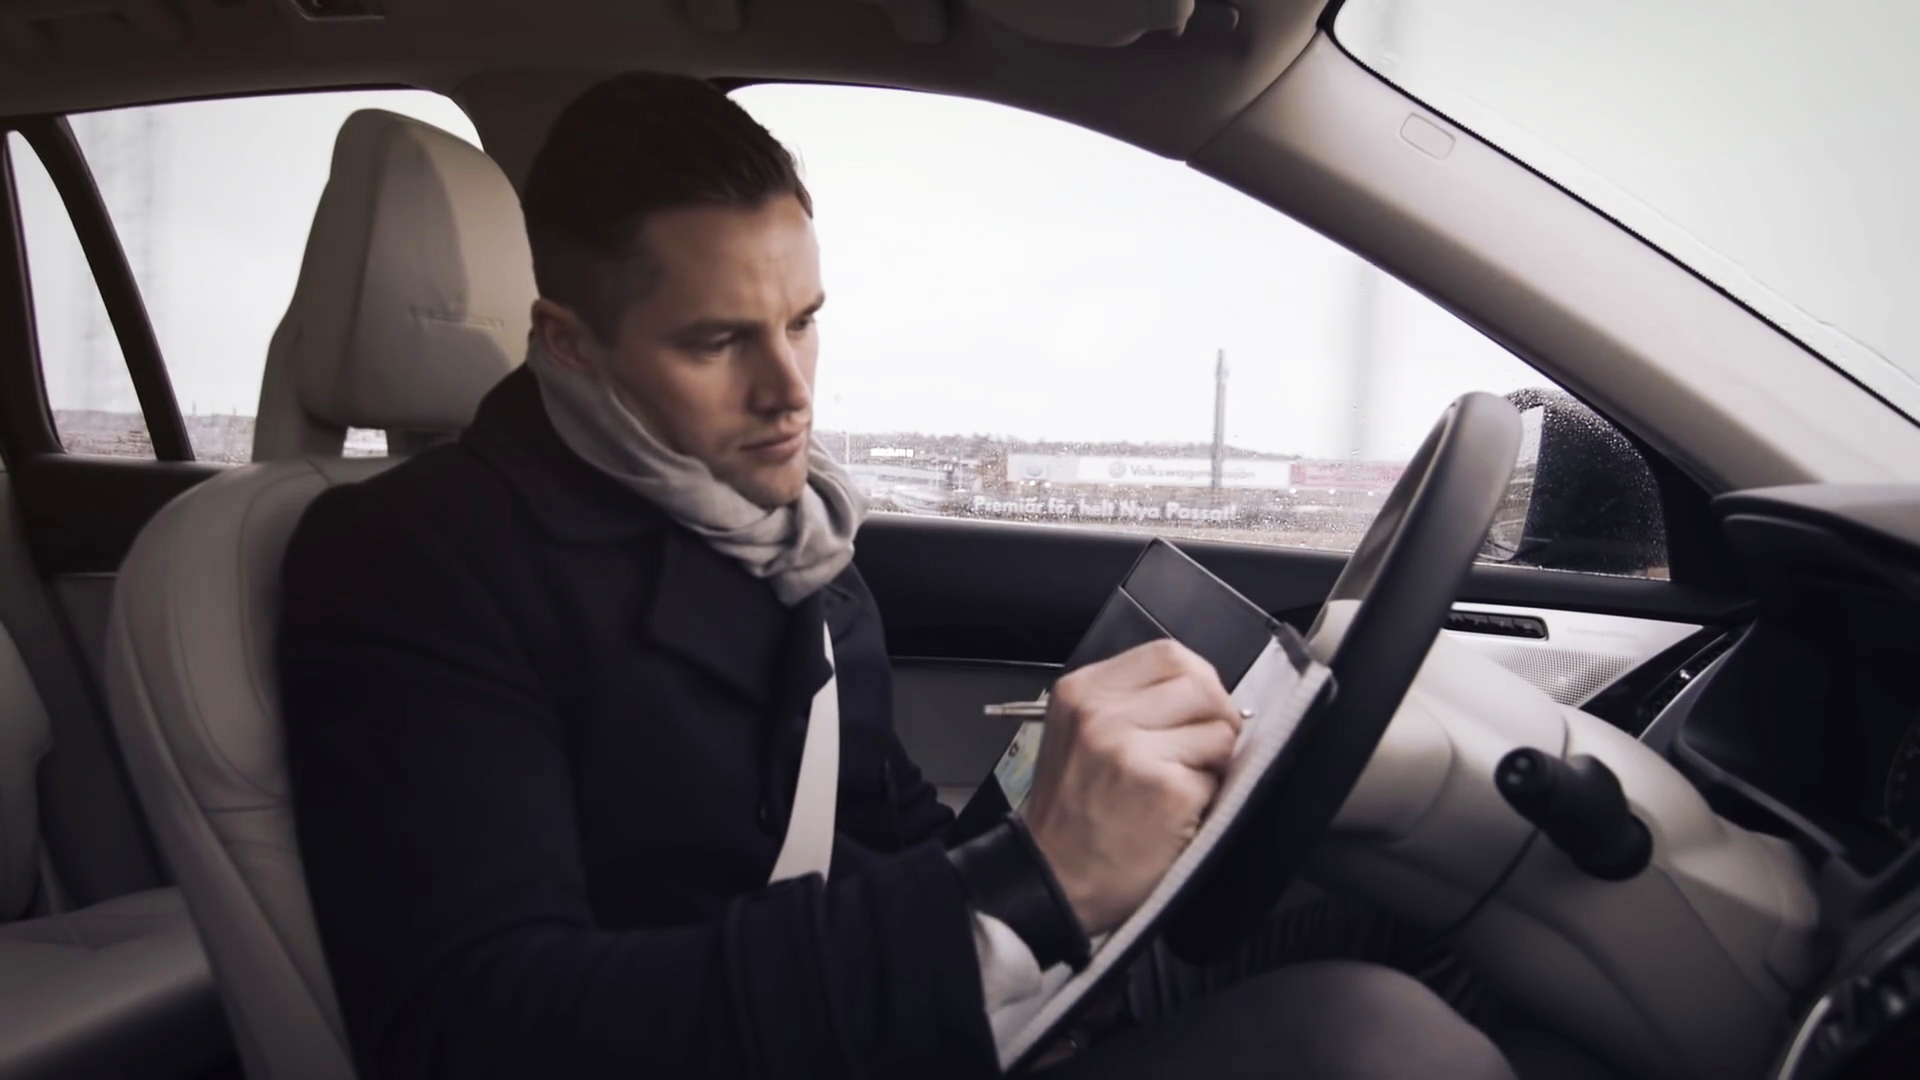 Video: Smarter Driver: Do you see yourself in a self-driving car?